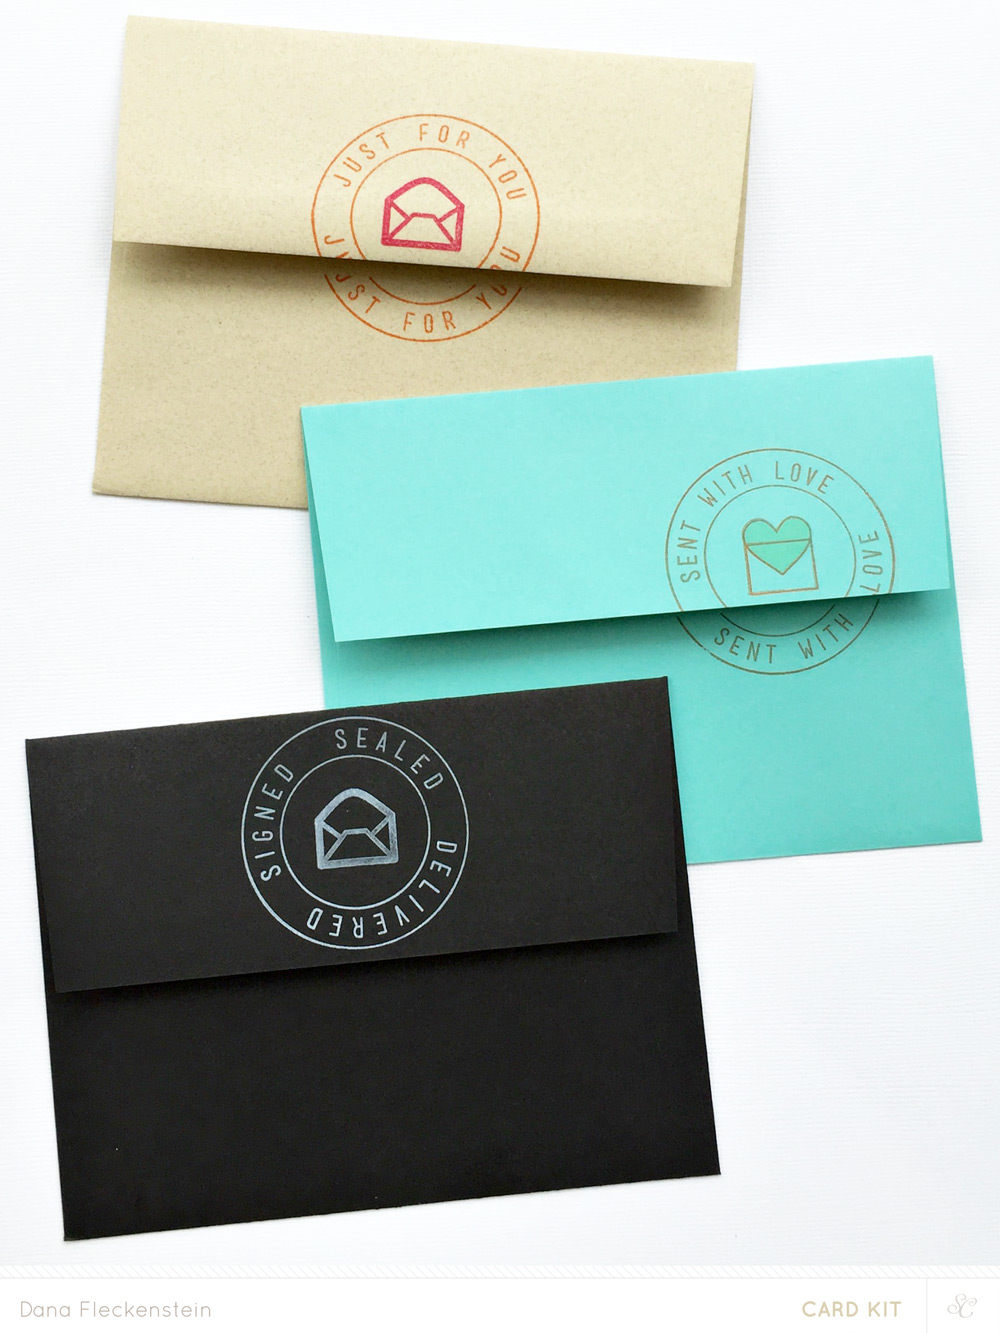 Signed Sealed Delivered Envelopes